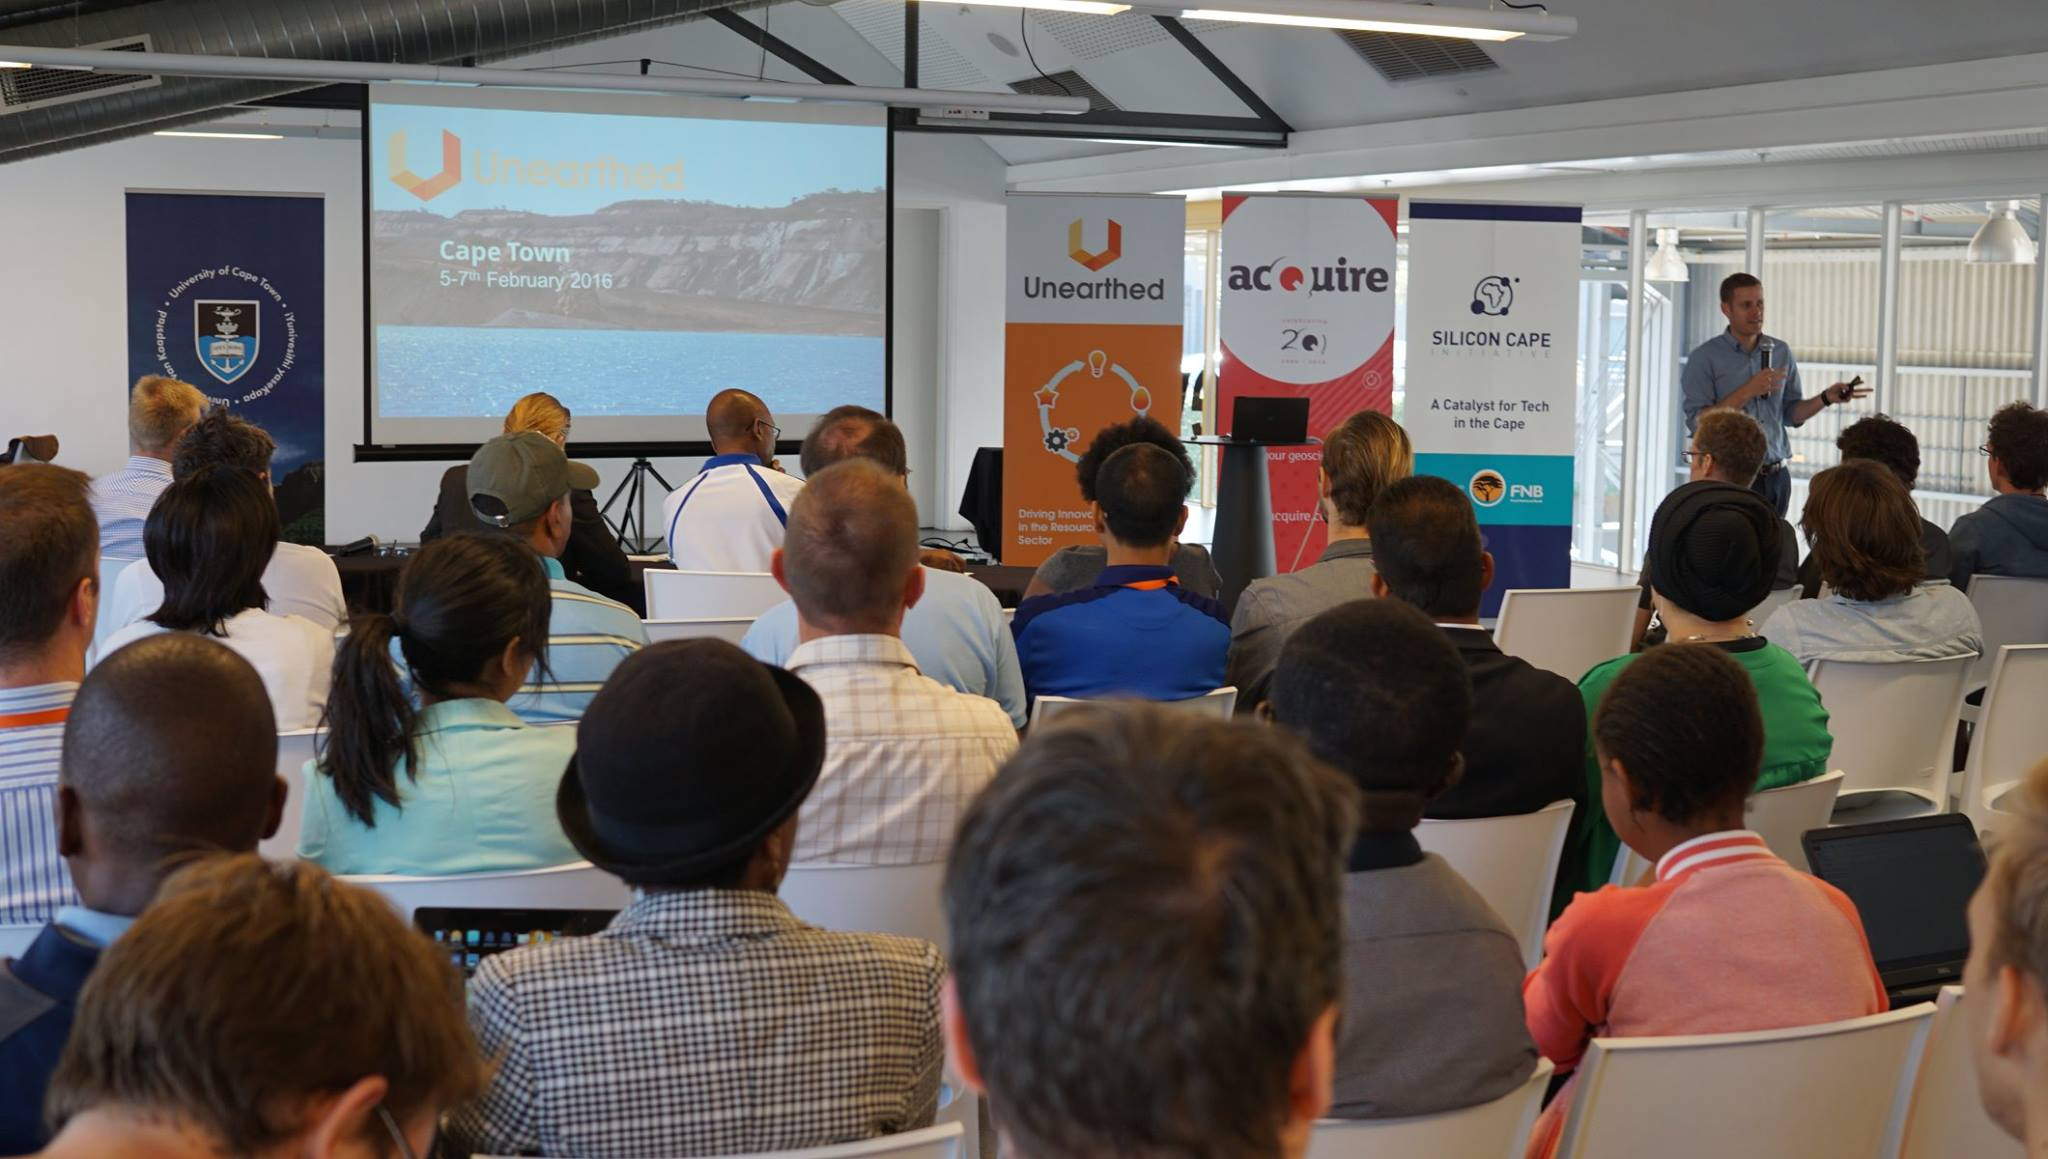 The first Unearthed Hackathon in Cape Town